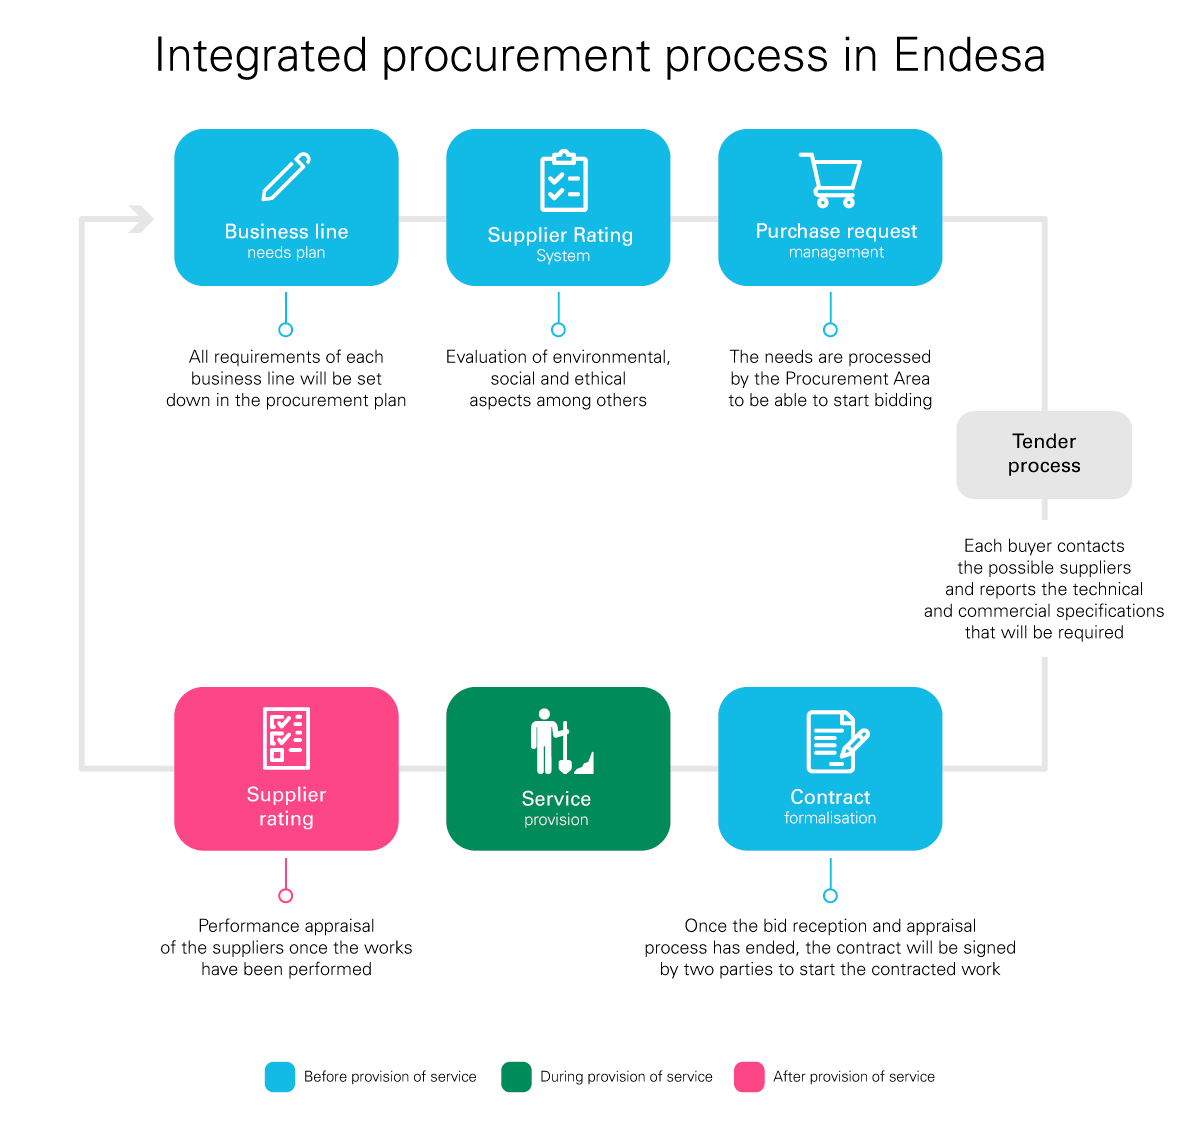 integrated procurement process at Endesa graphic -> Requirements plan for Business Lines - Vendor rating system - Purchase request management - Tender process - Contract formalisation - Provision of service - Vendor raing